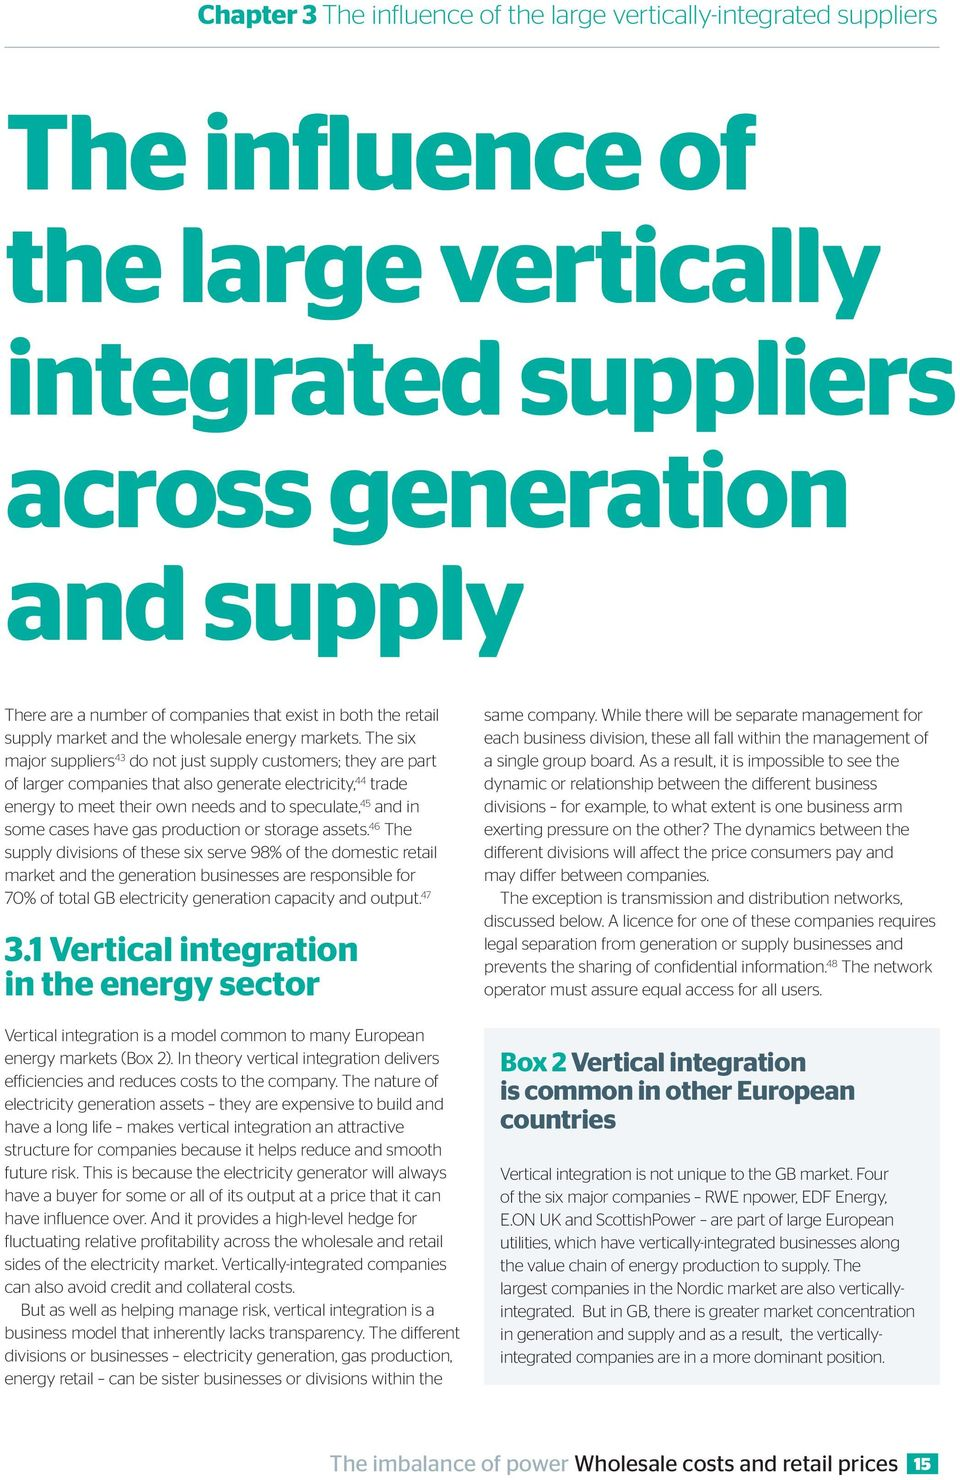 The six major suppliers 43 do not just supply customers; they are part of larger companies that also generate electricity, 44 trade energy to meet their own needs and to speculate, 45 and in some